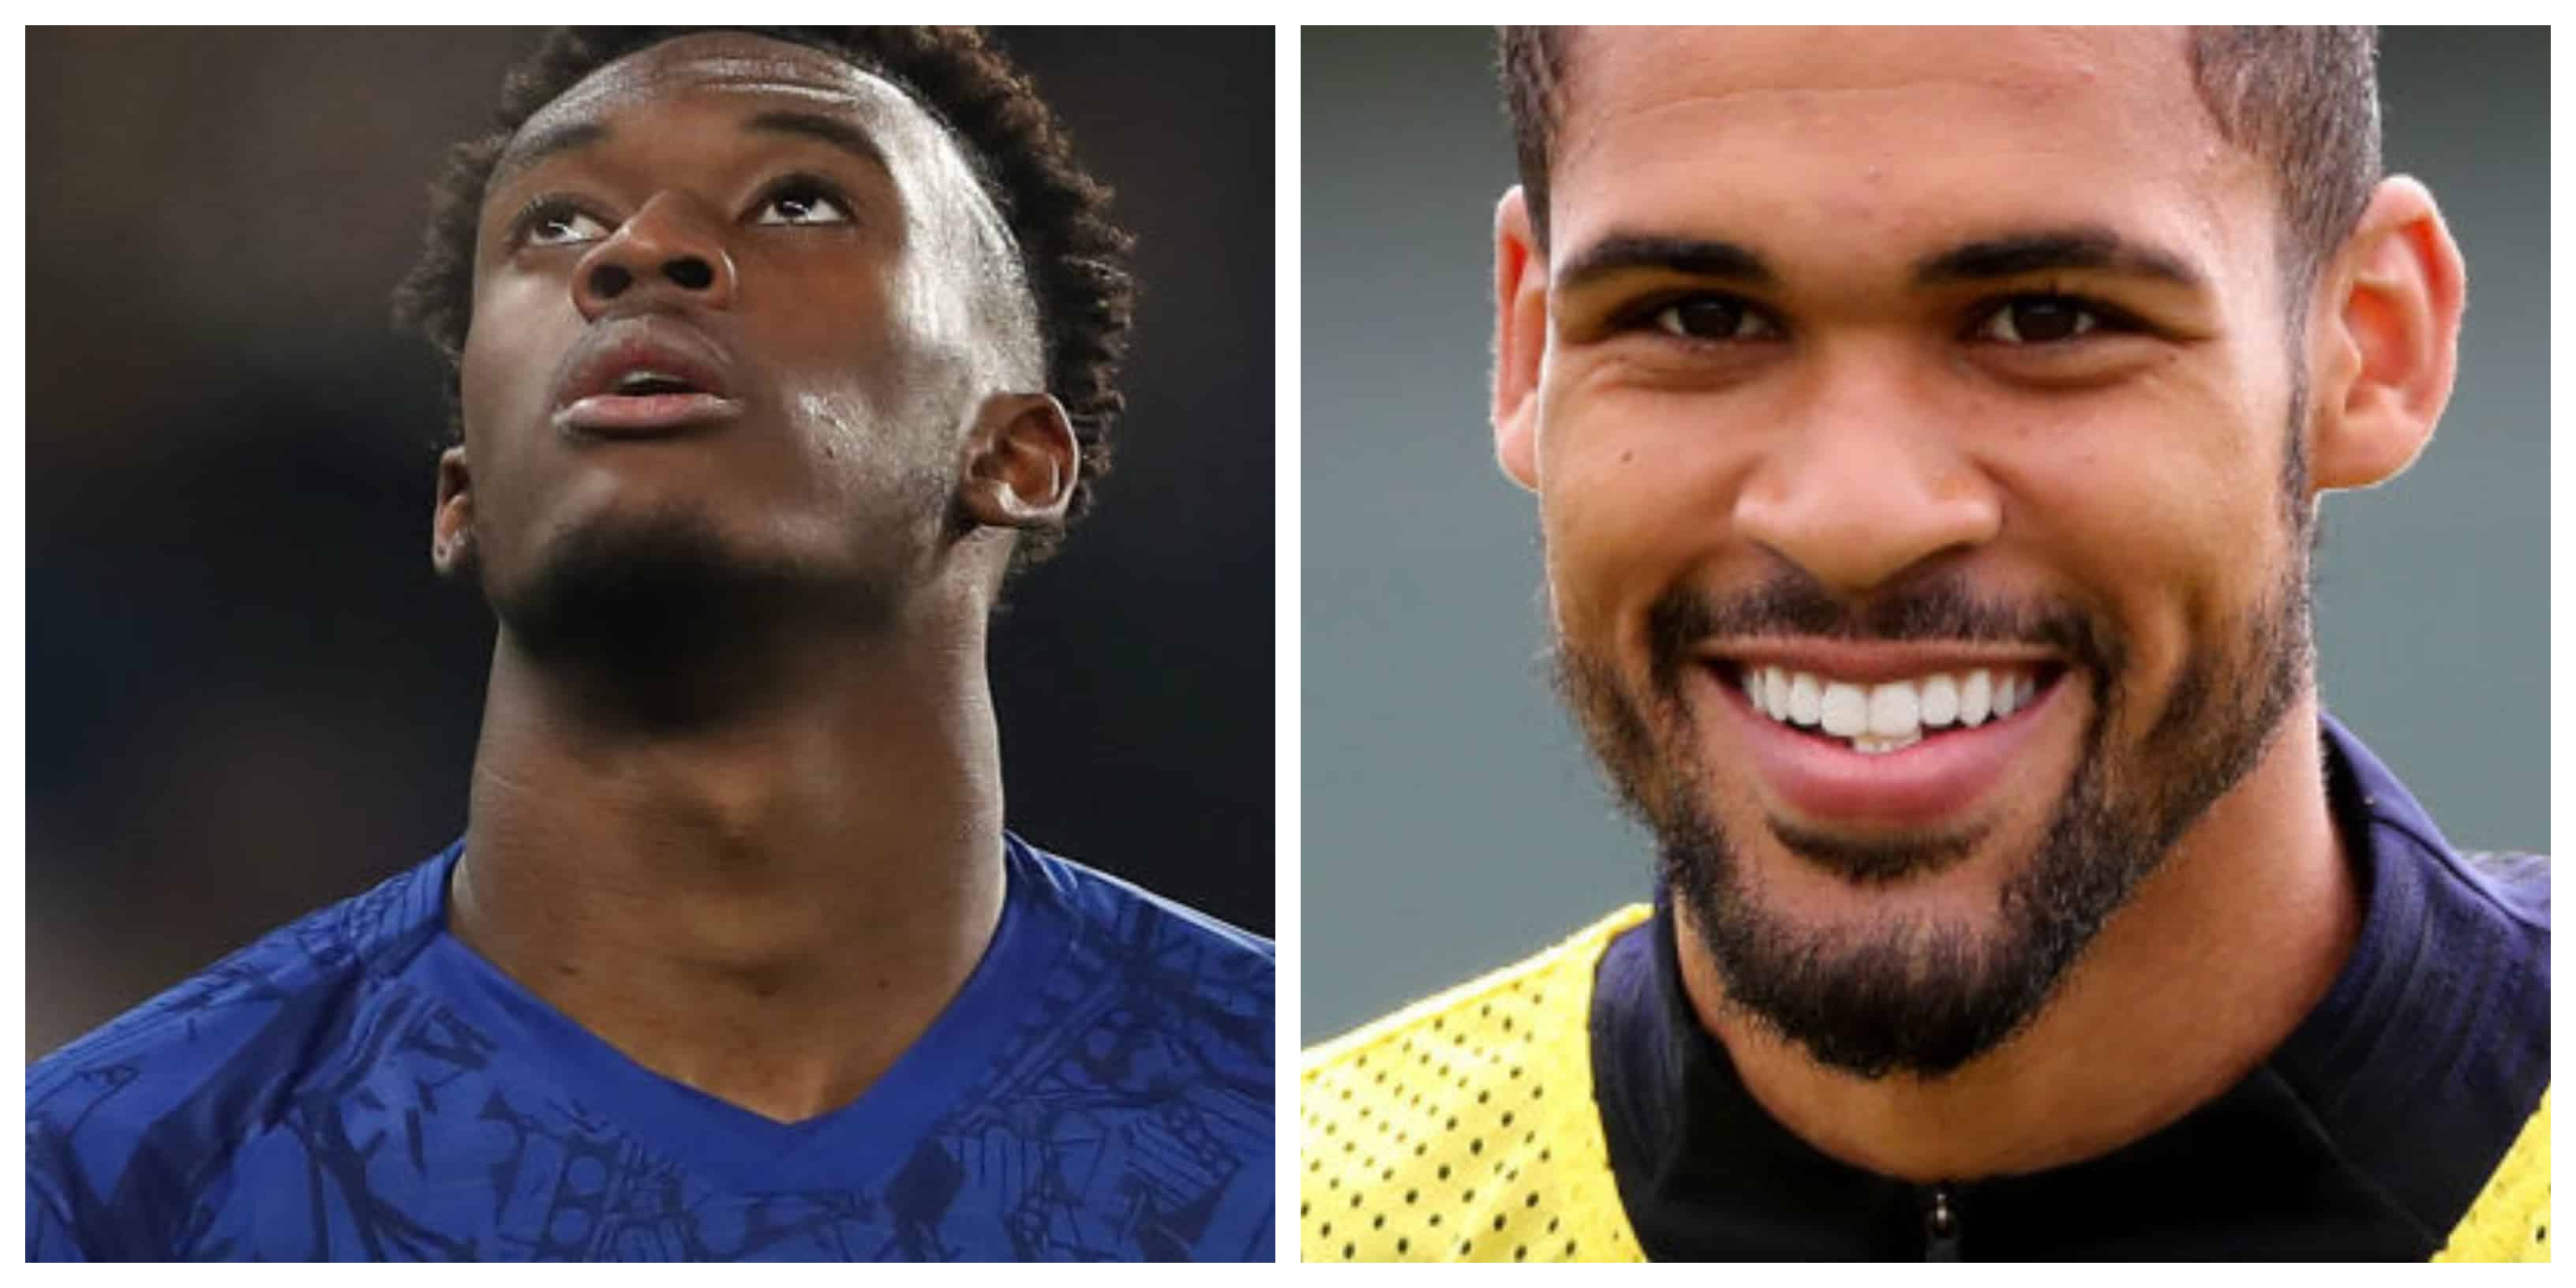 Chelsea: Ruben Loftus-Cheek and Callum Hudson-Odoi